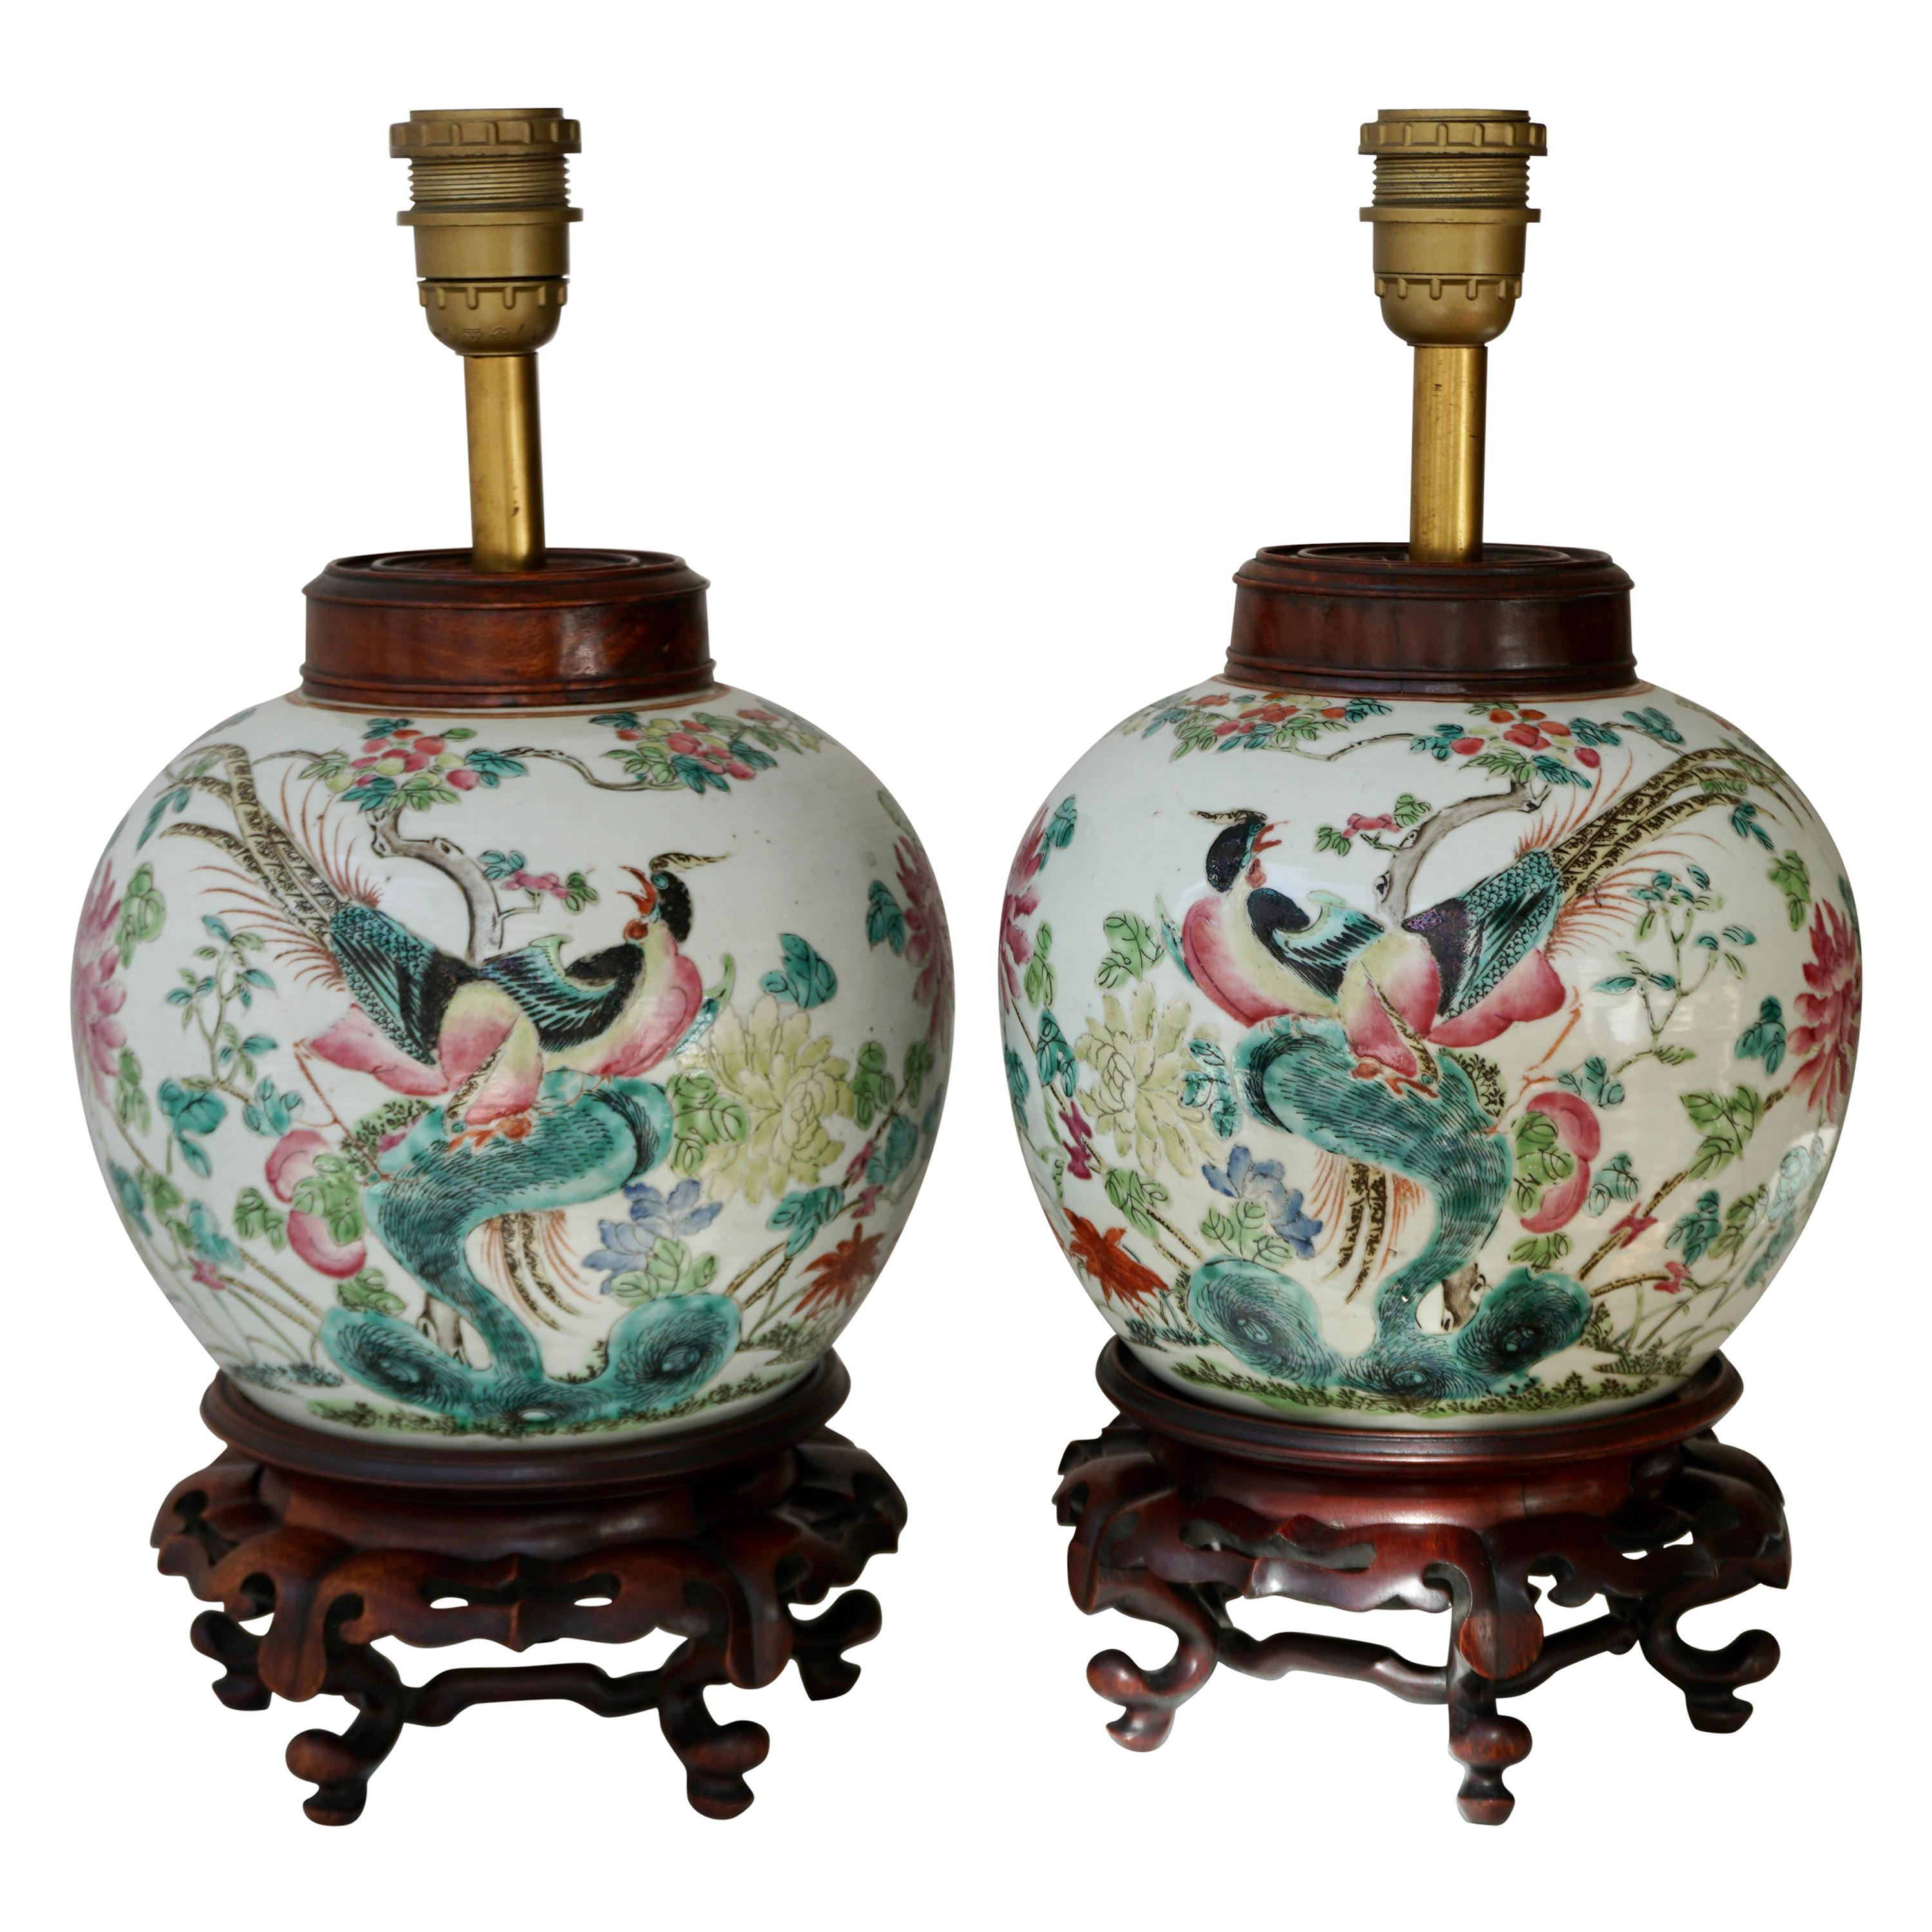 Pair of Chinese Export Porcelain Painted Ginger Jar Table Lamps with Birds